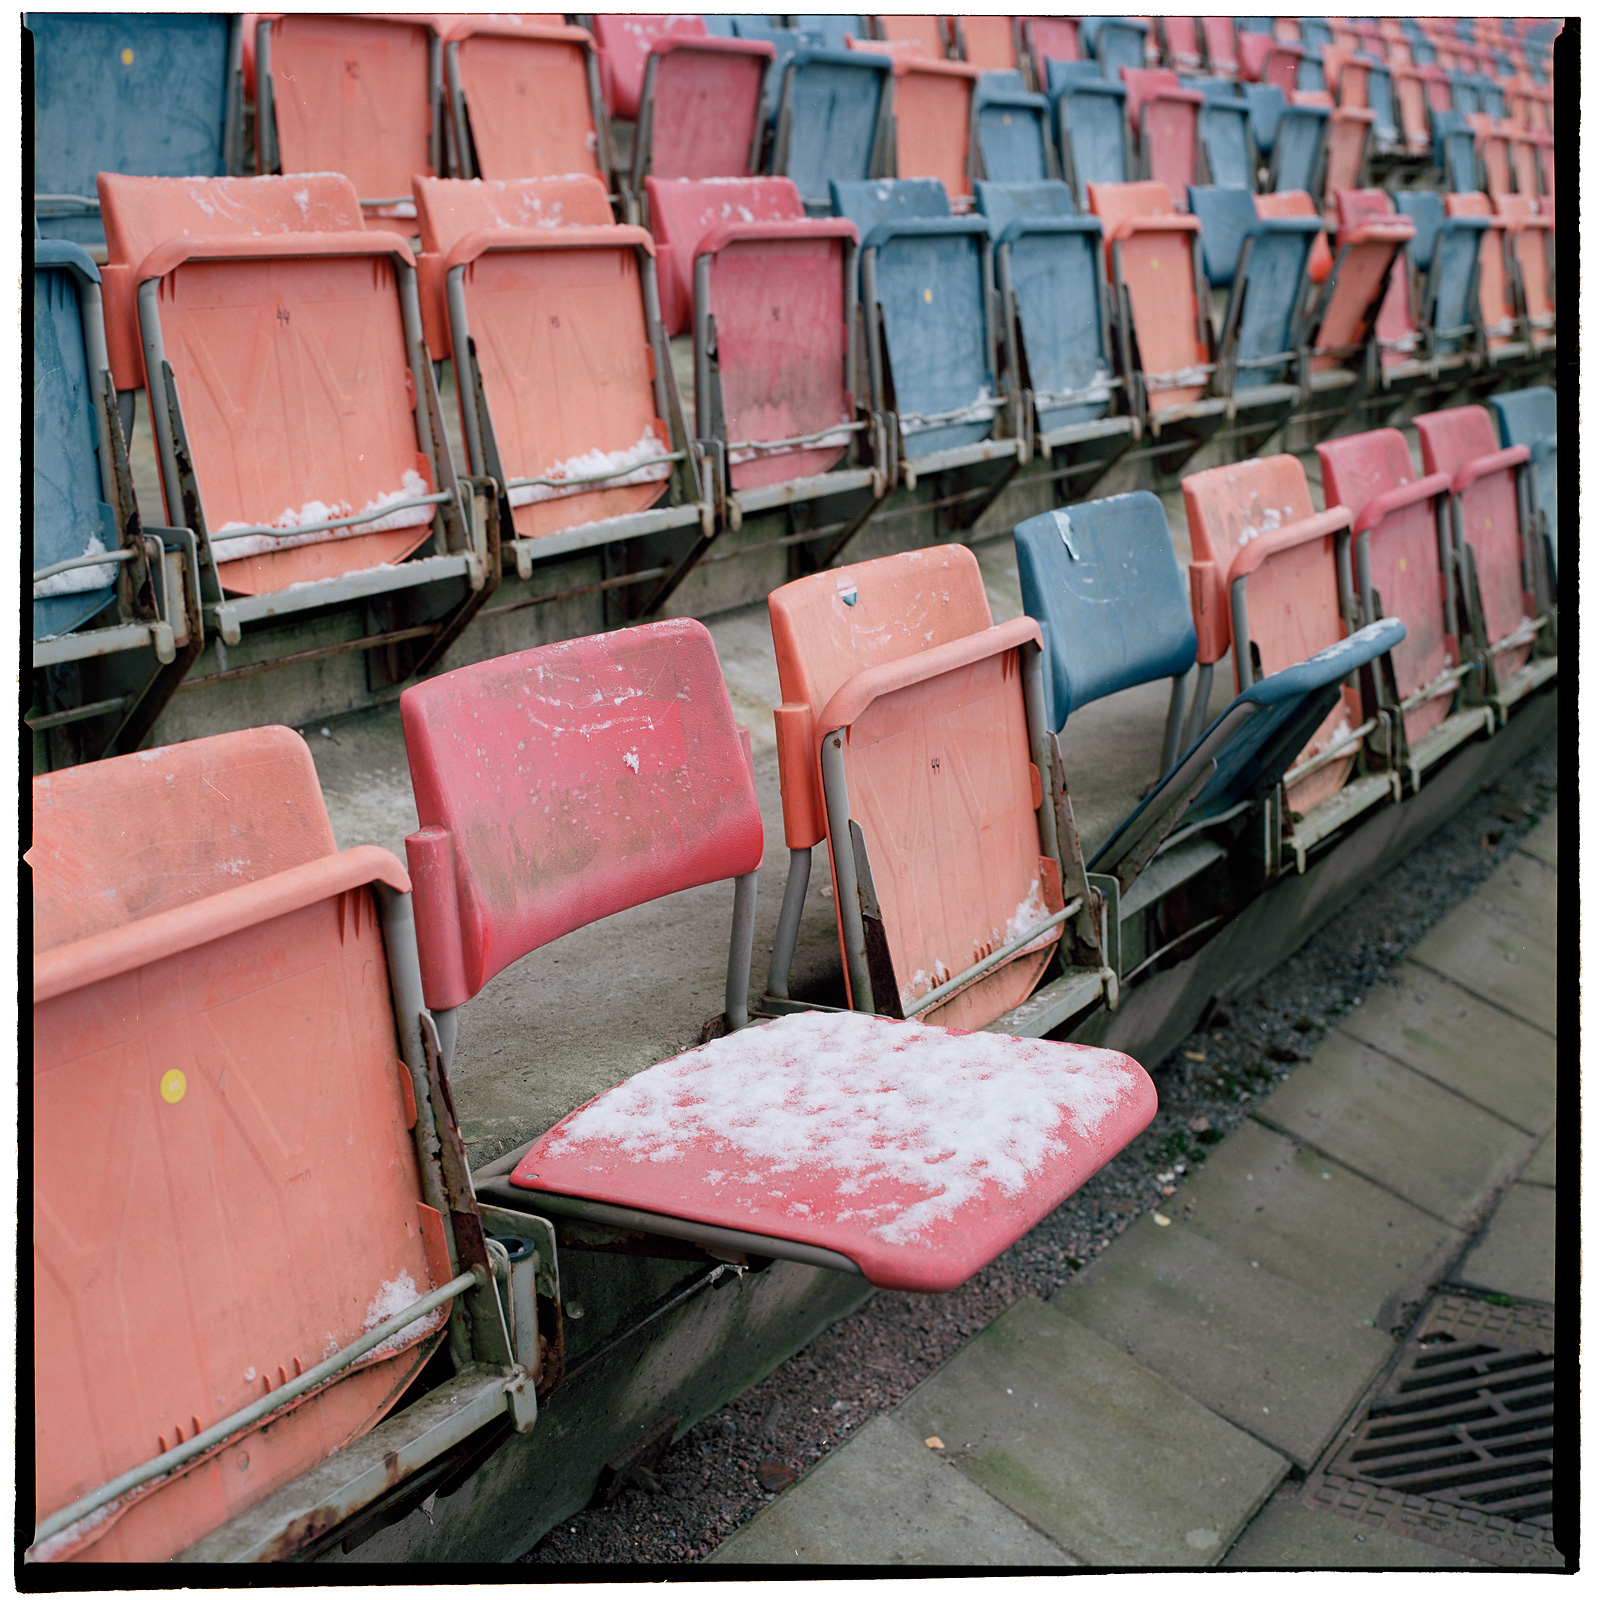 The season's first snow settled on worn seats at Råsundastadion. Solna, Stockholm, Sweden. October 2012.